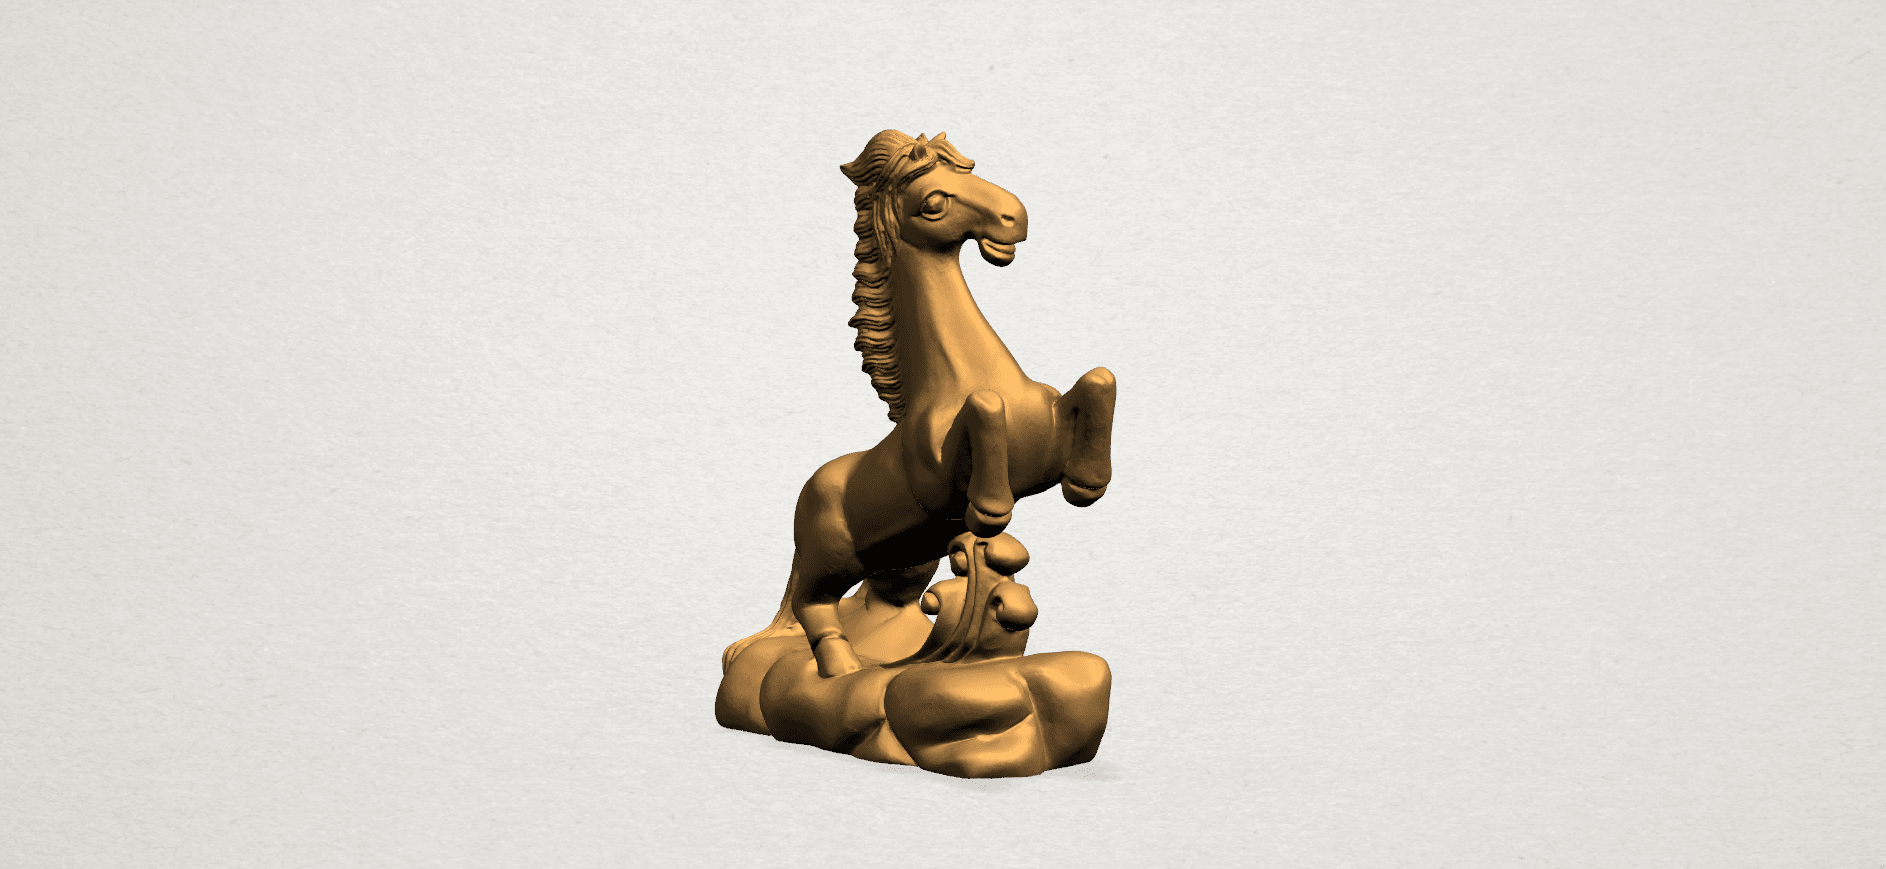 Chinese Horoscope07-A02.png Download free STL file Chinese Horoscope 07 Horse • 3D printer model, GeorgesNikkei